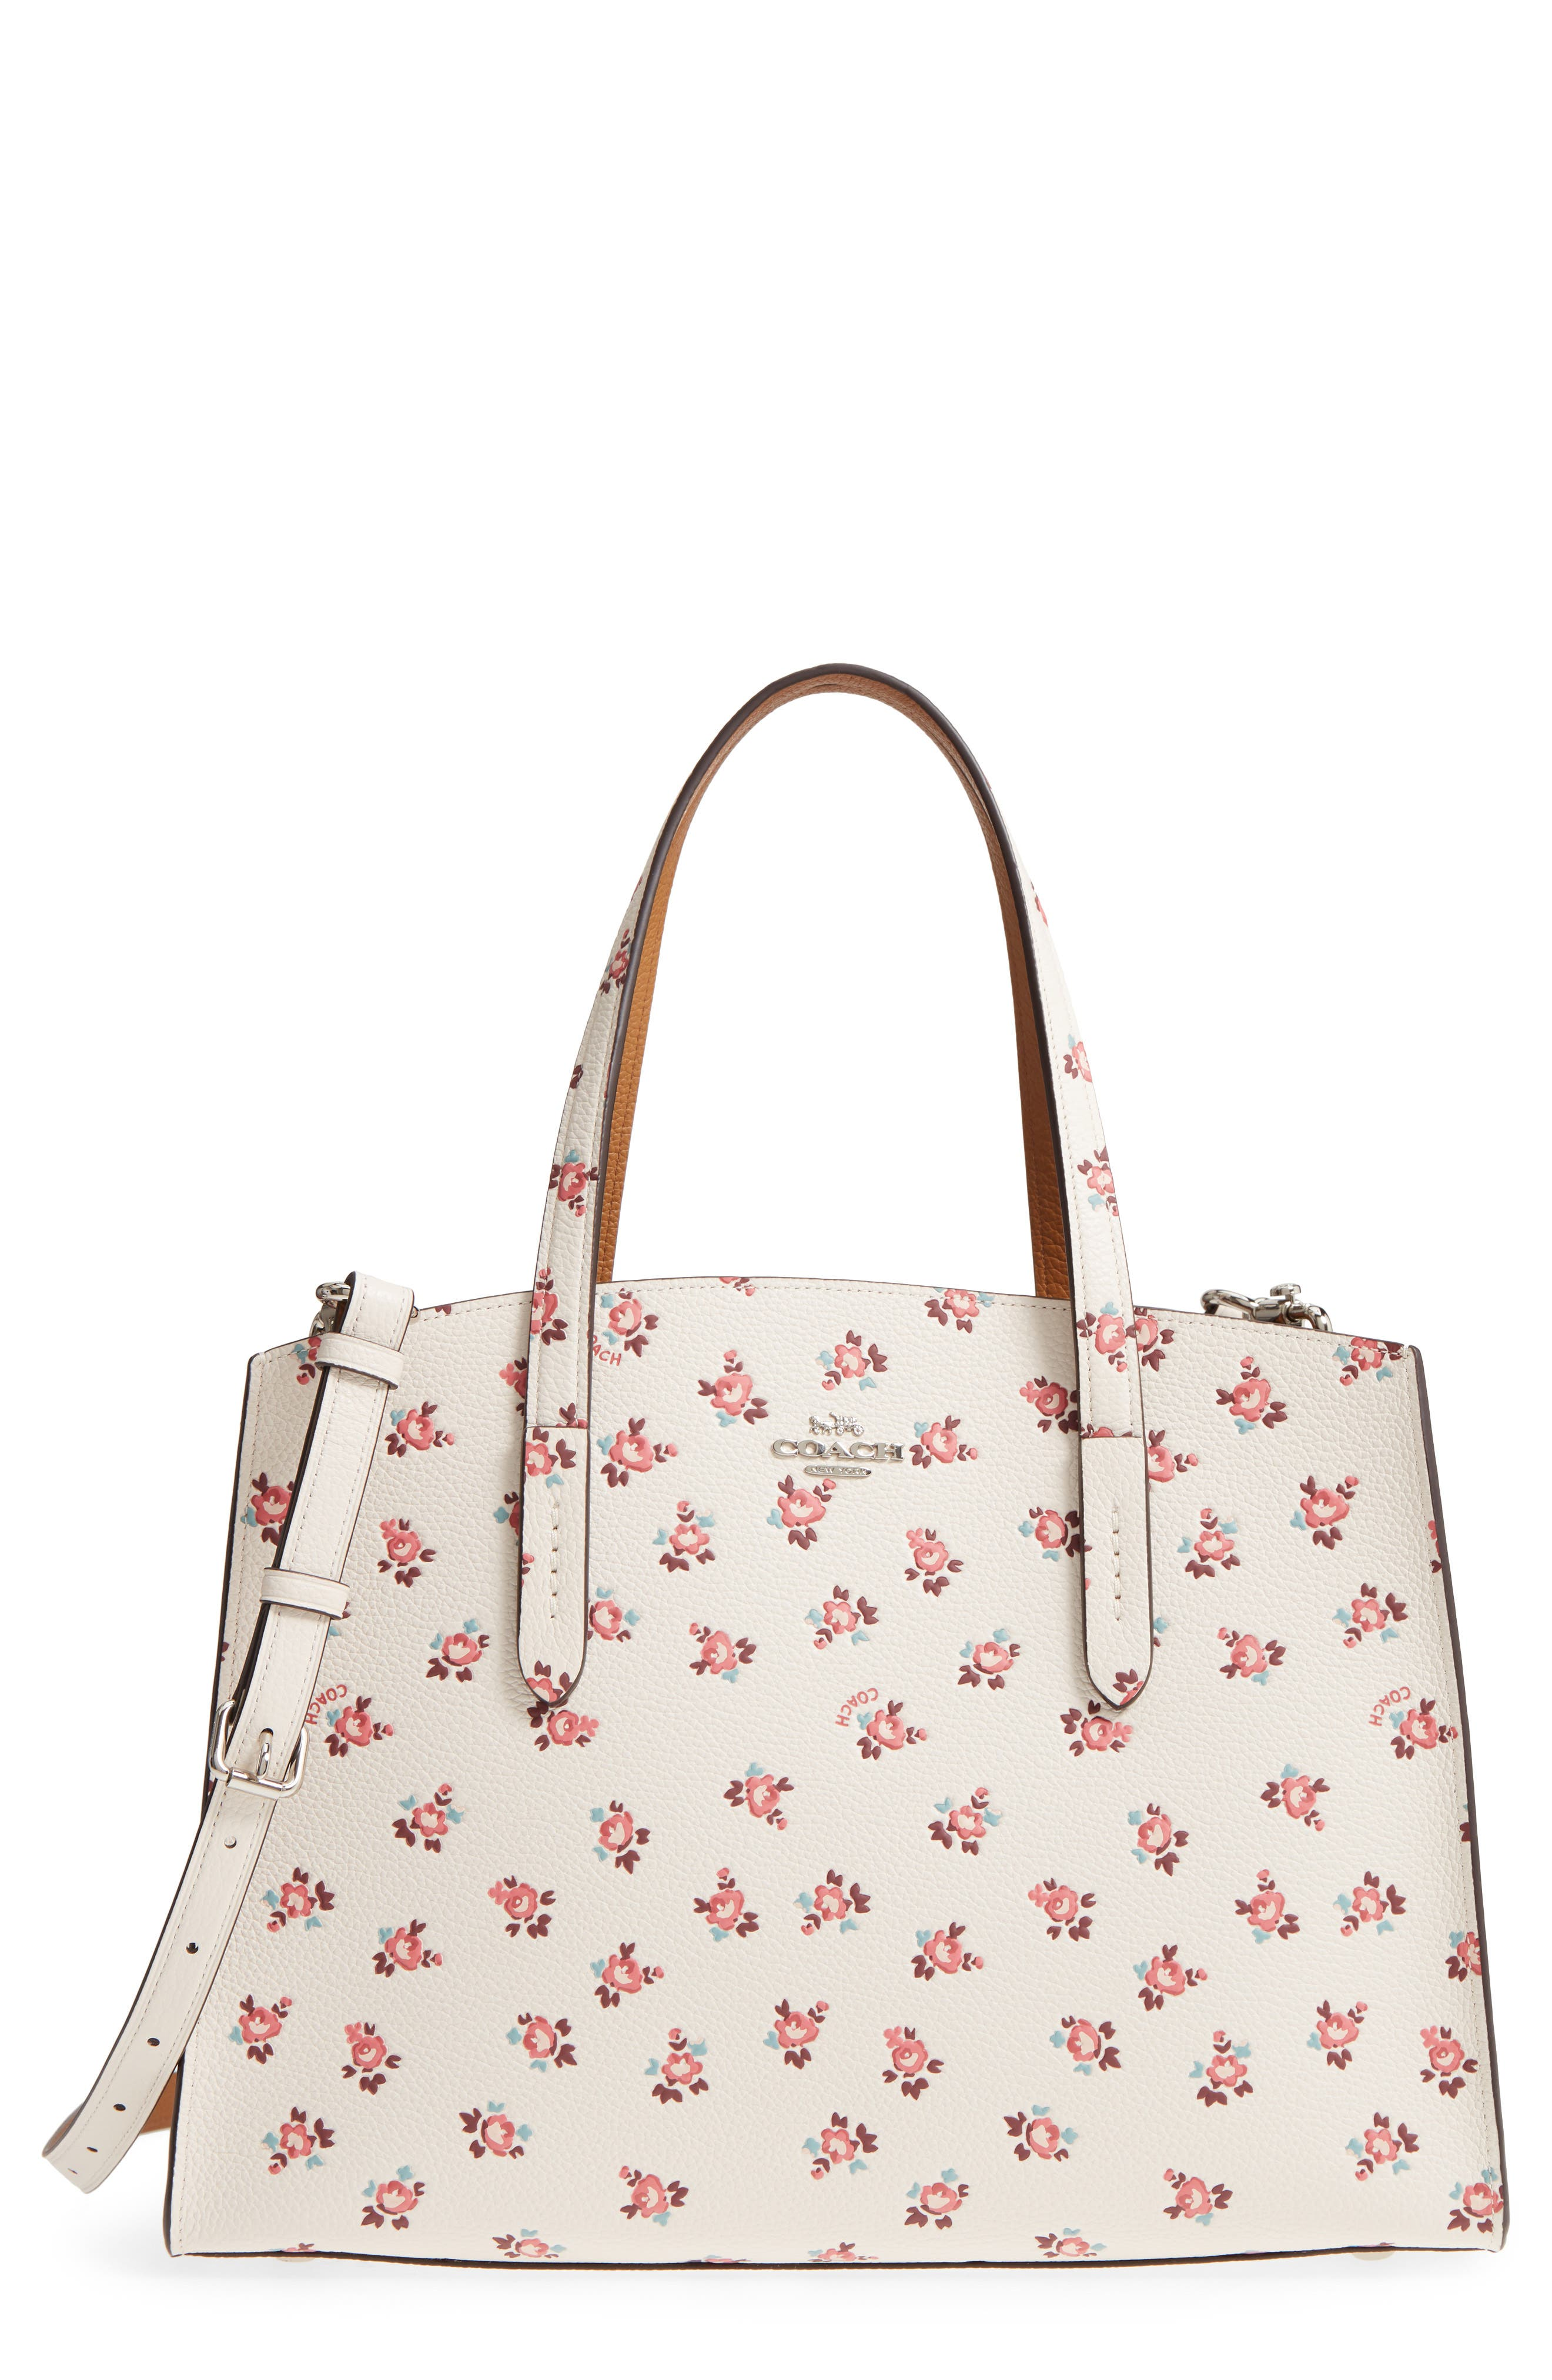 Charlie Floral Embossed Leather Tote,                             Main thumbnail 1, color,                             900